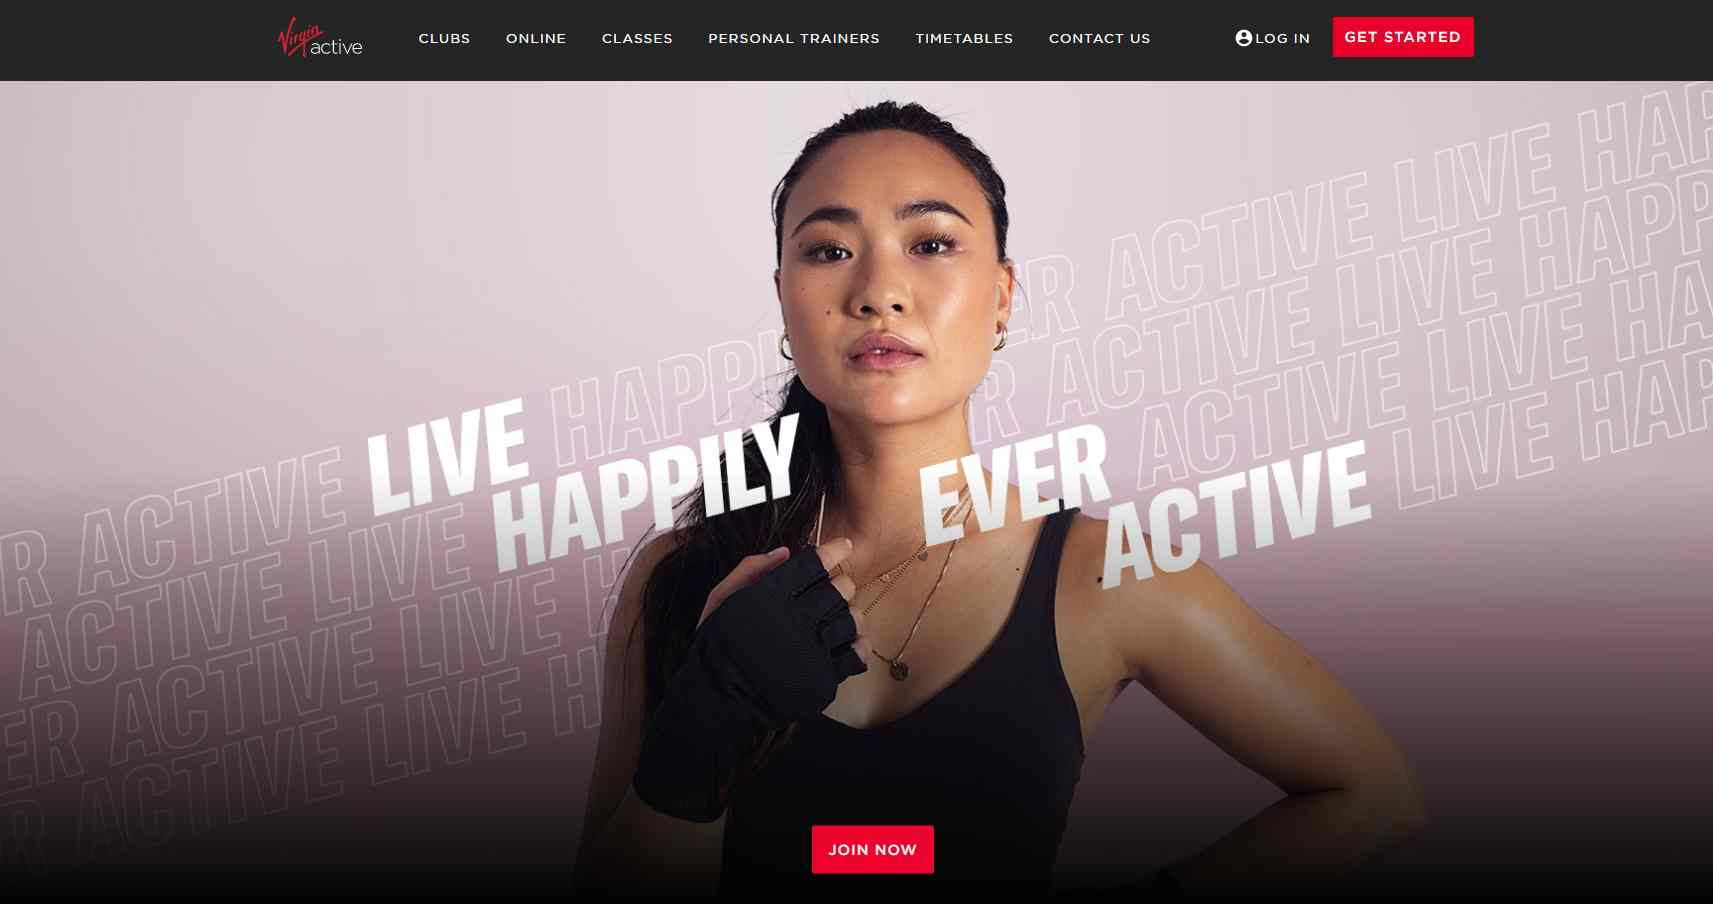 virgin active Top Gyms In Singapore